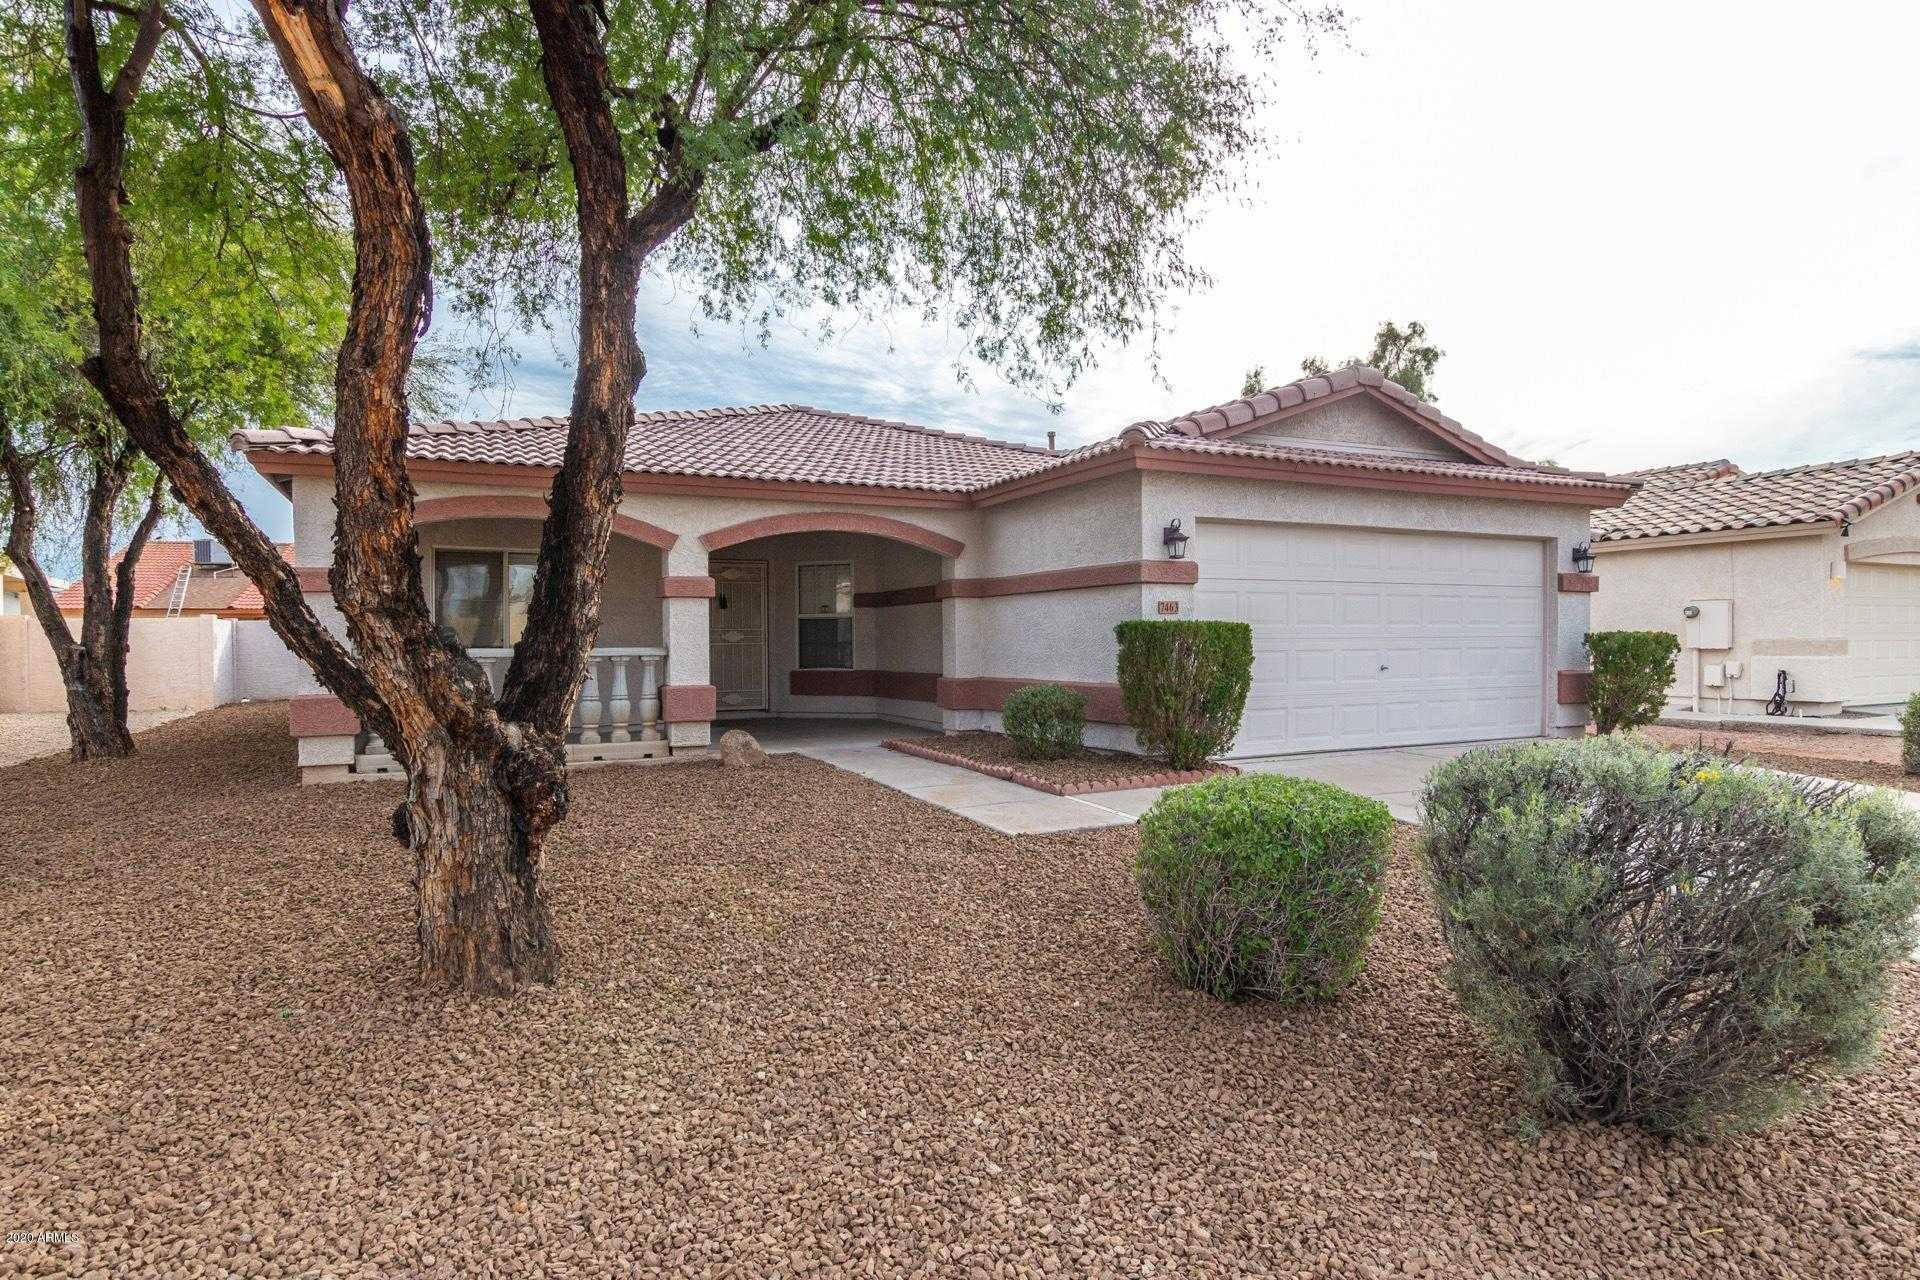 $275,000 - 3Br/2Ba - Home for Sale in Eagle Pass, Glendale